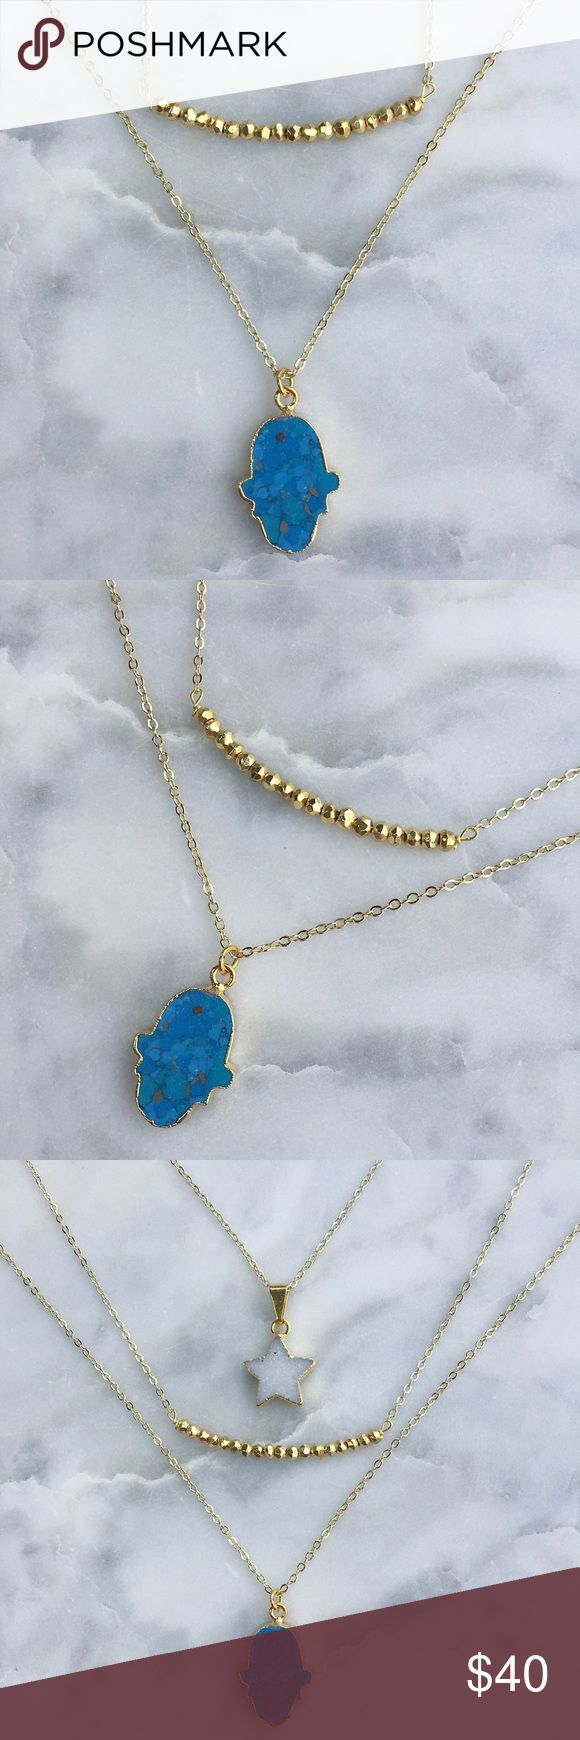 "Turquoise Hamsa Necklace Natural 24k gold plated turquoise Hamsa pendant on an 18"" 18k gold plated chain▫️handmade in El Paso, TX Simple Sanctuary Jewelry Necklaces"